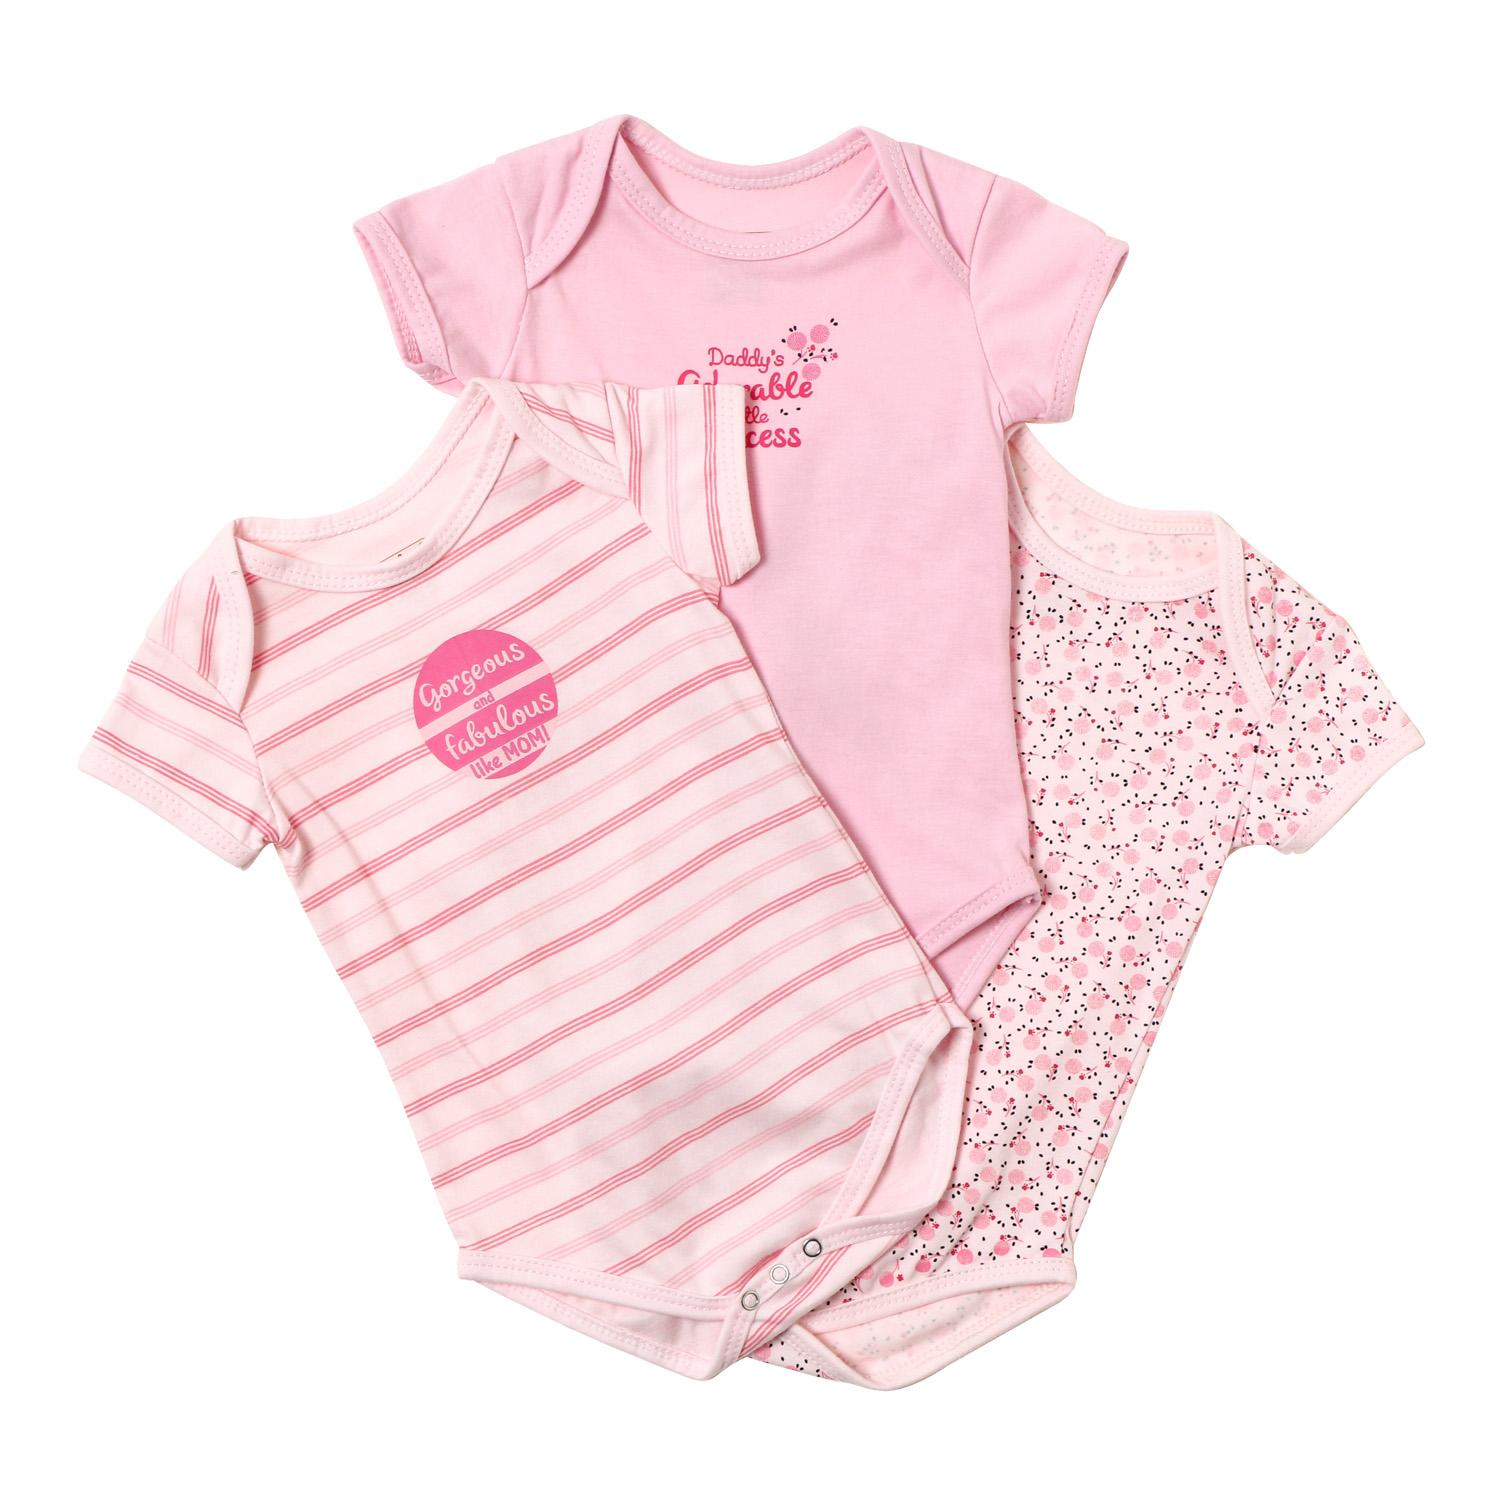 9630d880c Onesies for Girls for sale - Body Suits for Girls online brands ...